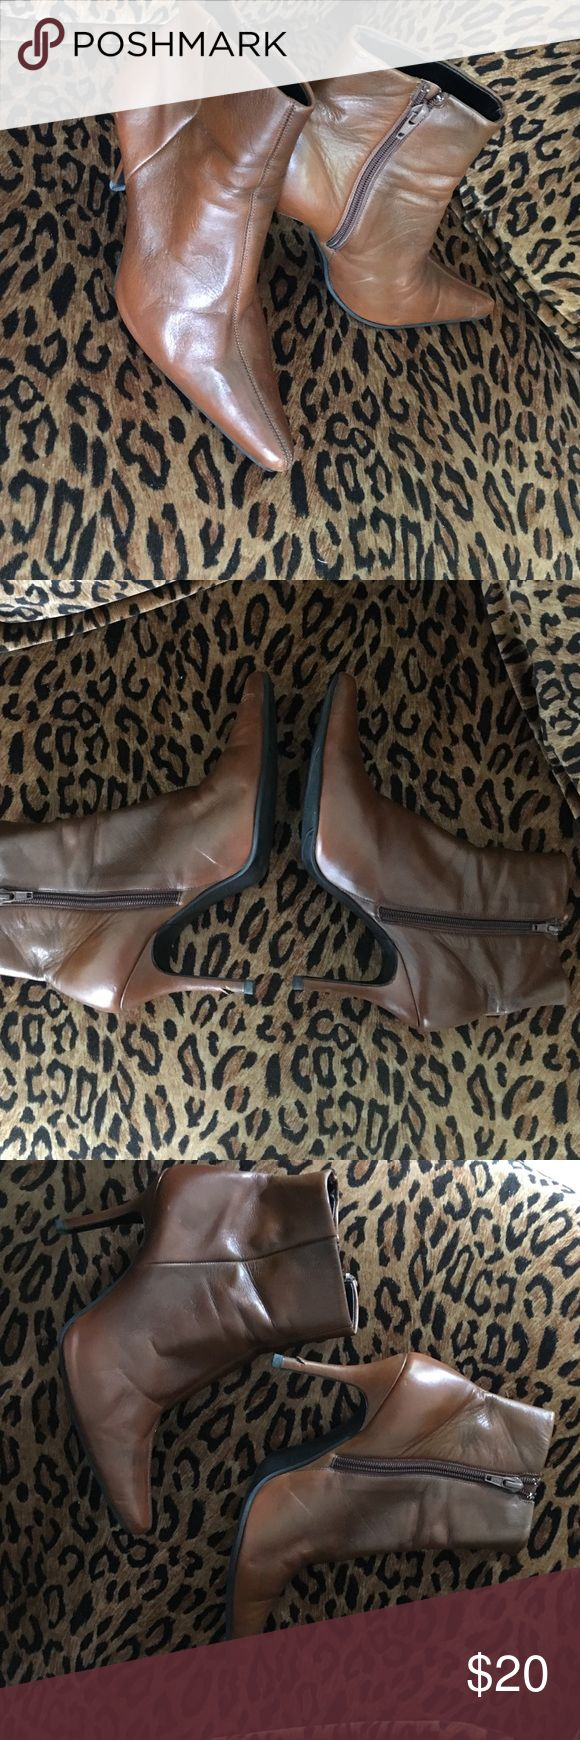 Emilio Bertolini leather boots with side zipper Beautiful pre loved designer boots 3 inch heels Emilio Bertolini Shoes Heeled Boots